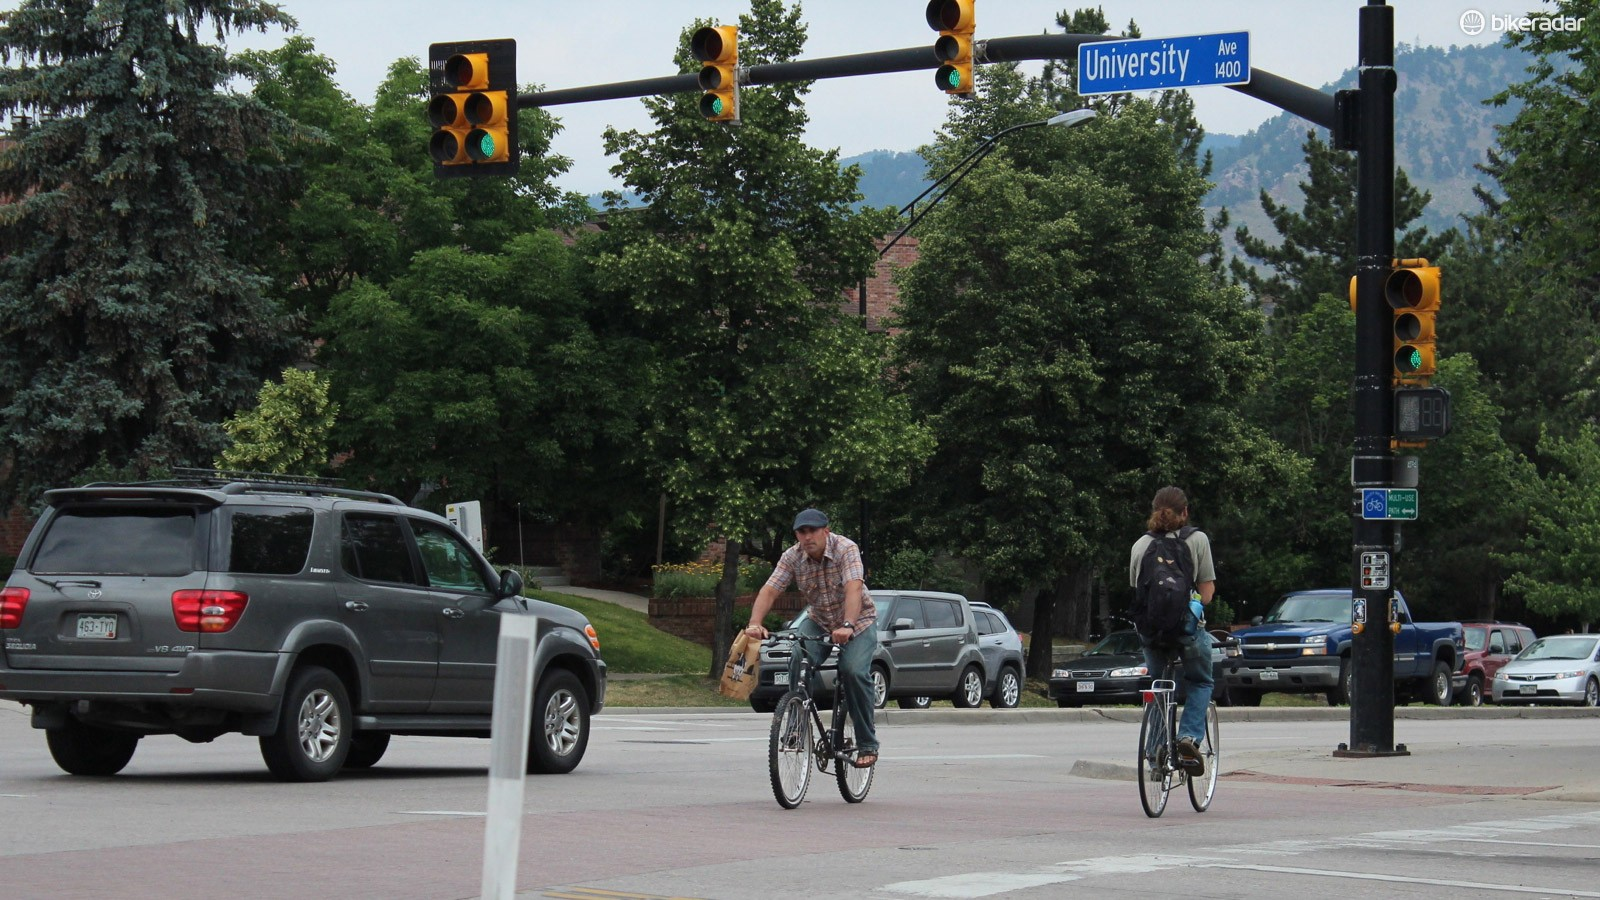 About 12 percent of people in Boulder, Colorado get around on bikes, the study said